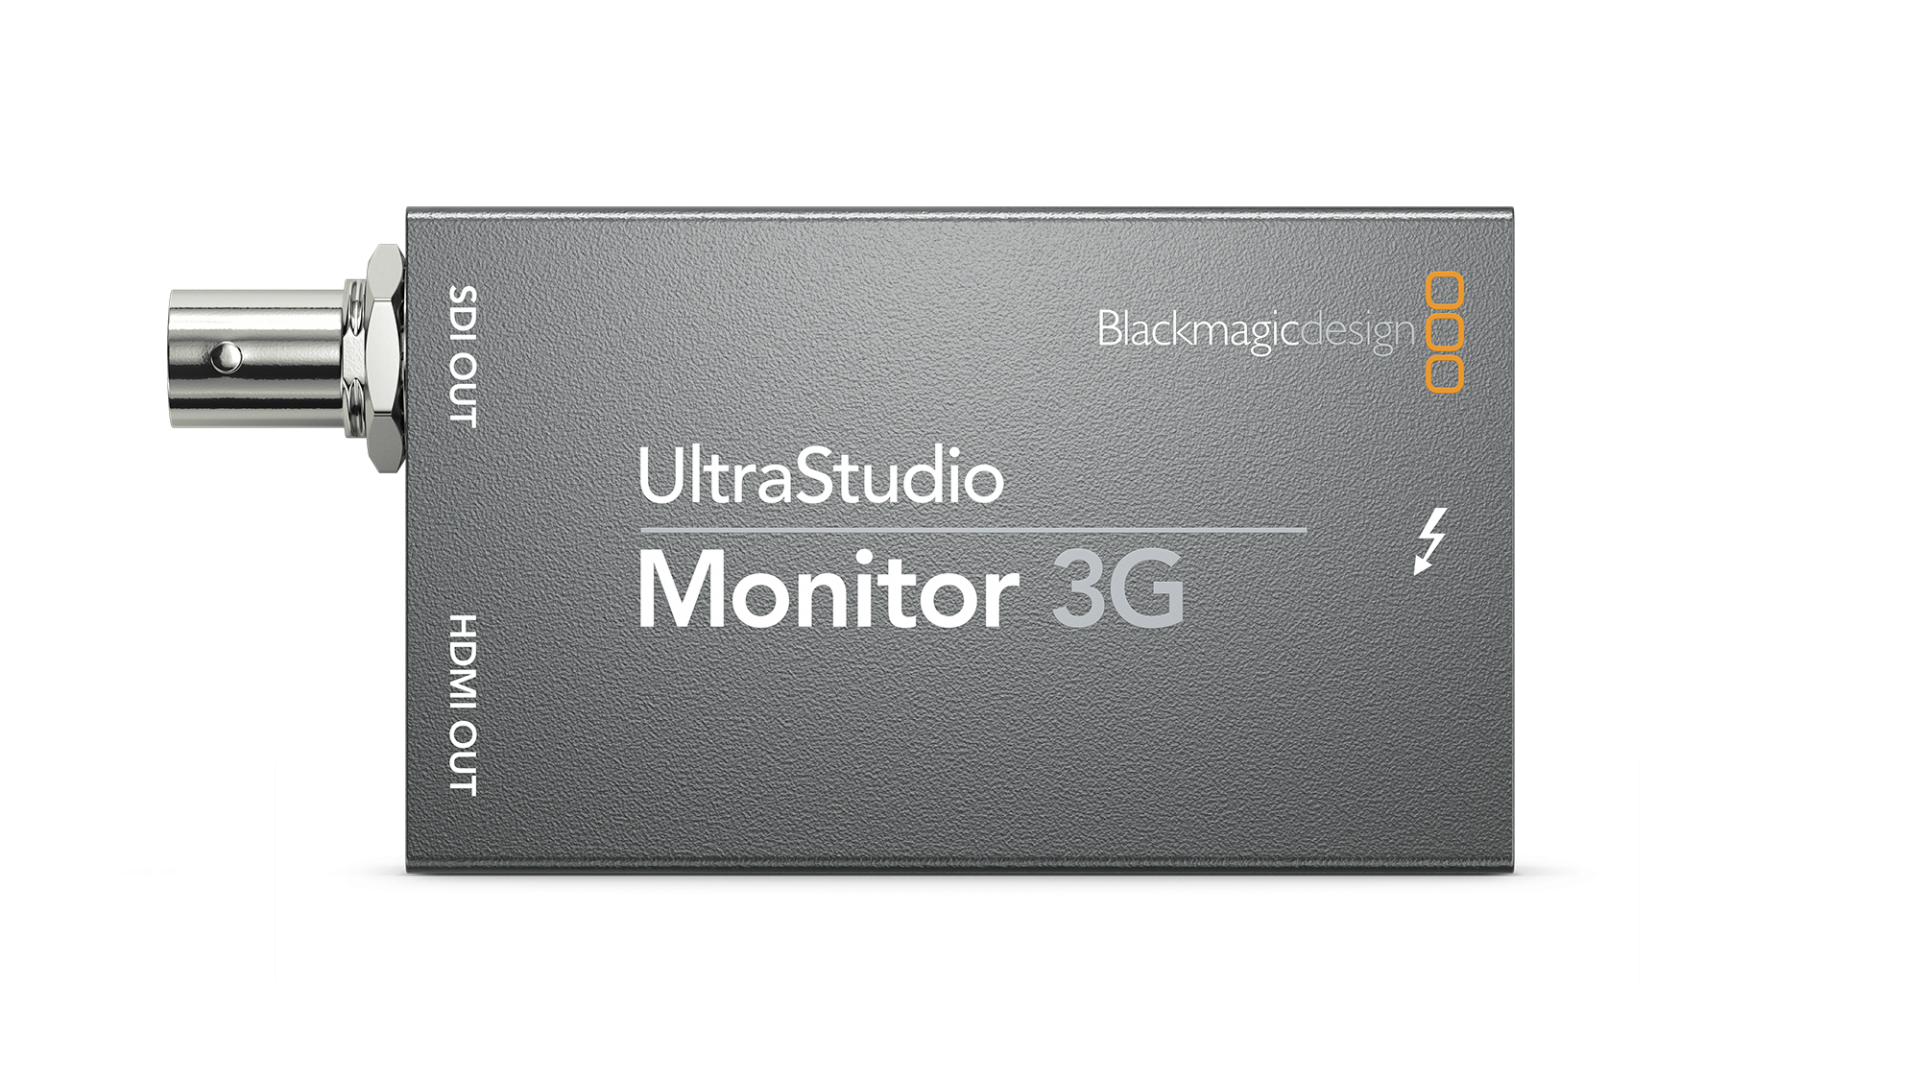 Blackmagic UltraStudio Monitor 3G - Novo